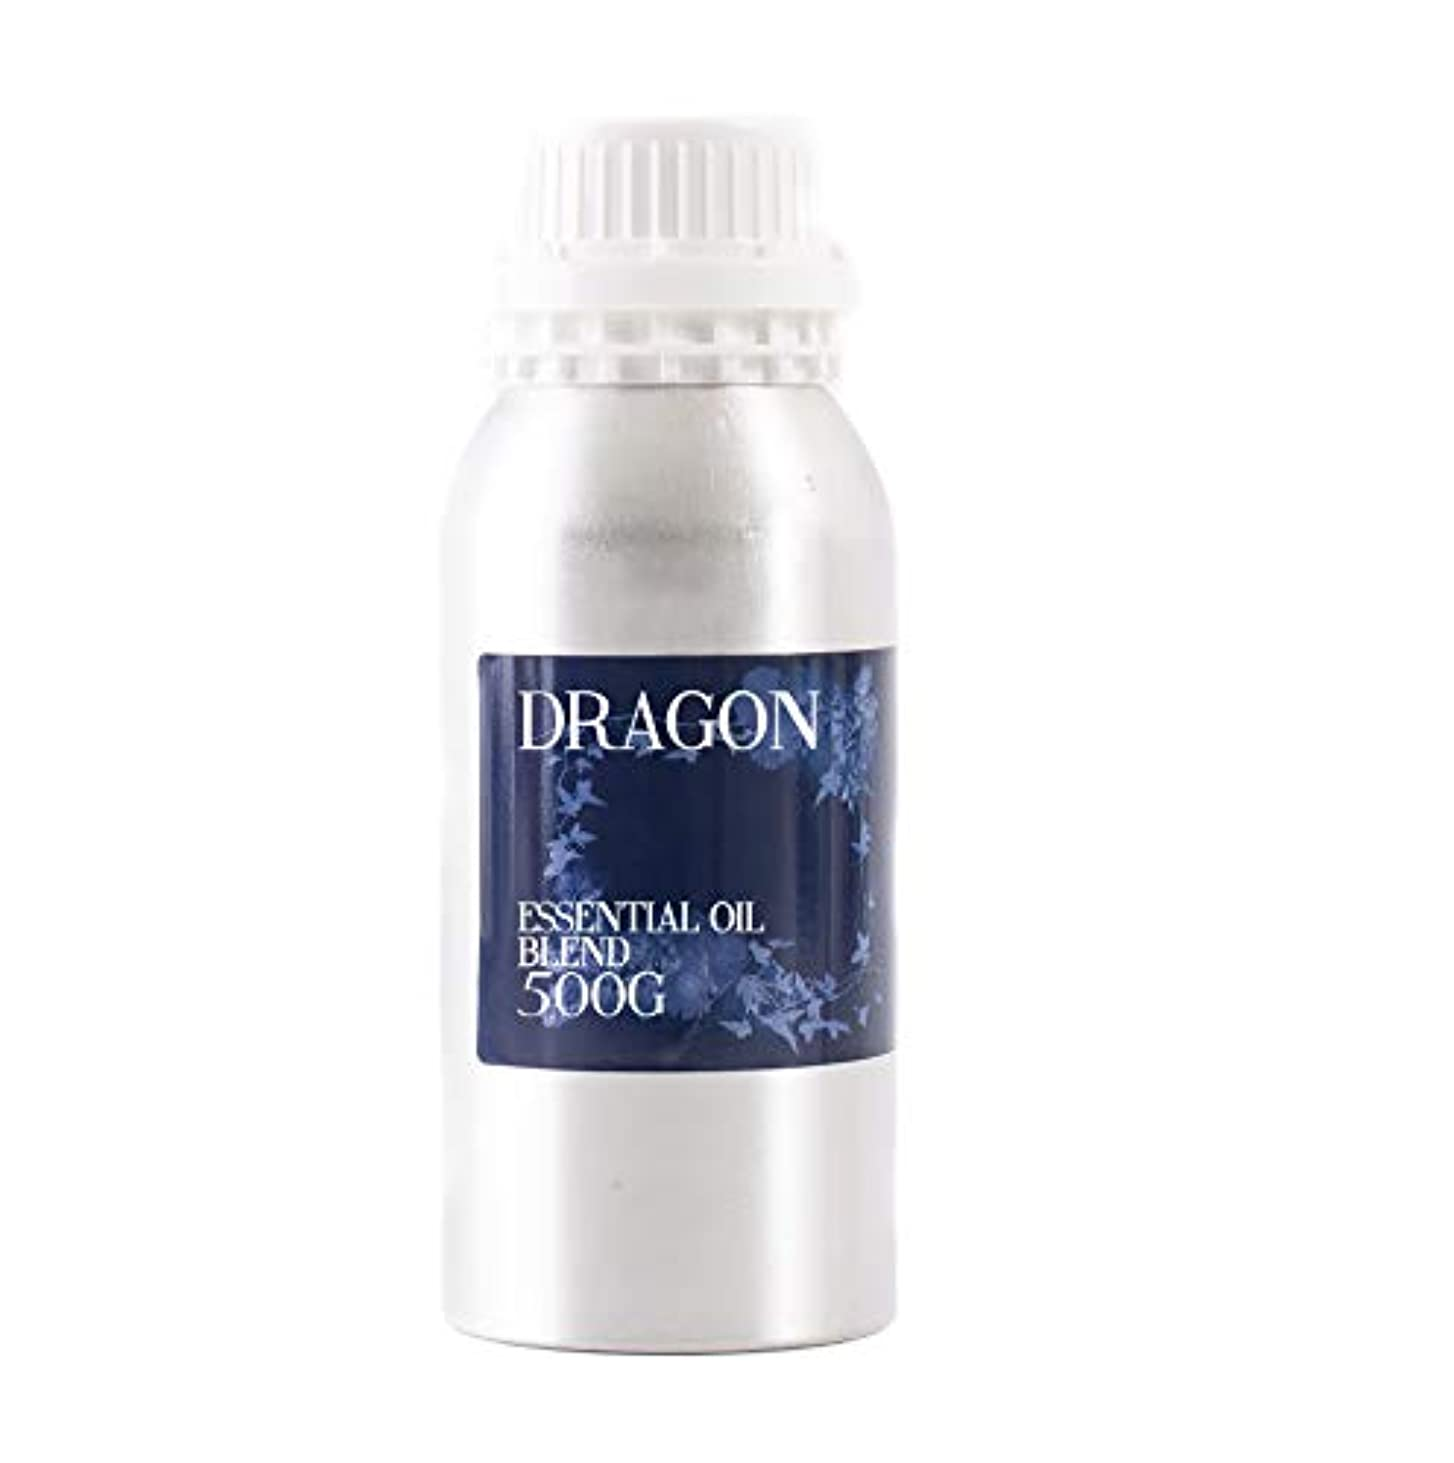 レトルト配当吸い込むMystix London | Dragon | Chinese Zodiac Essential Oil Blend 500g